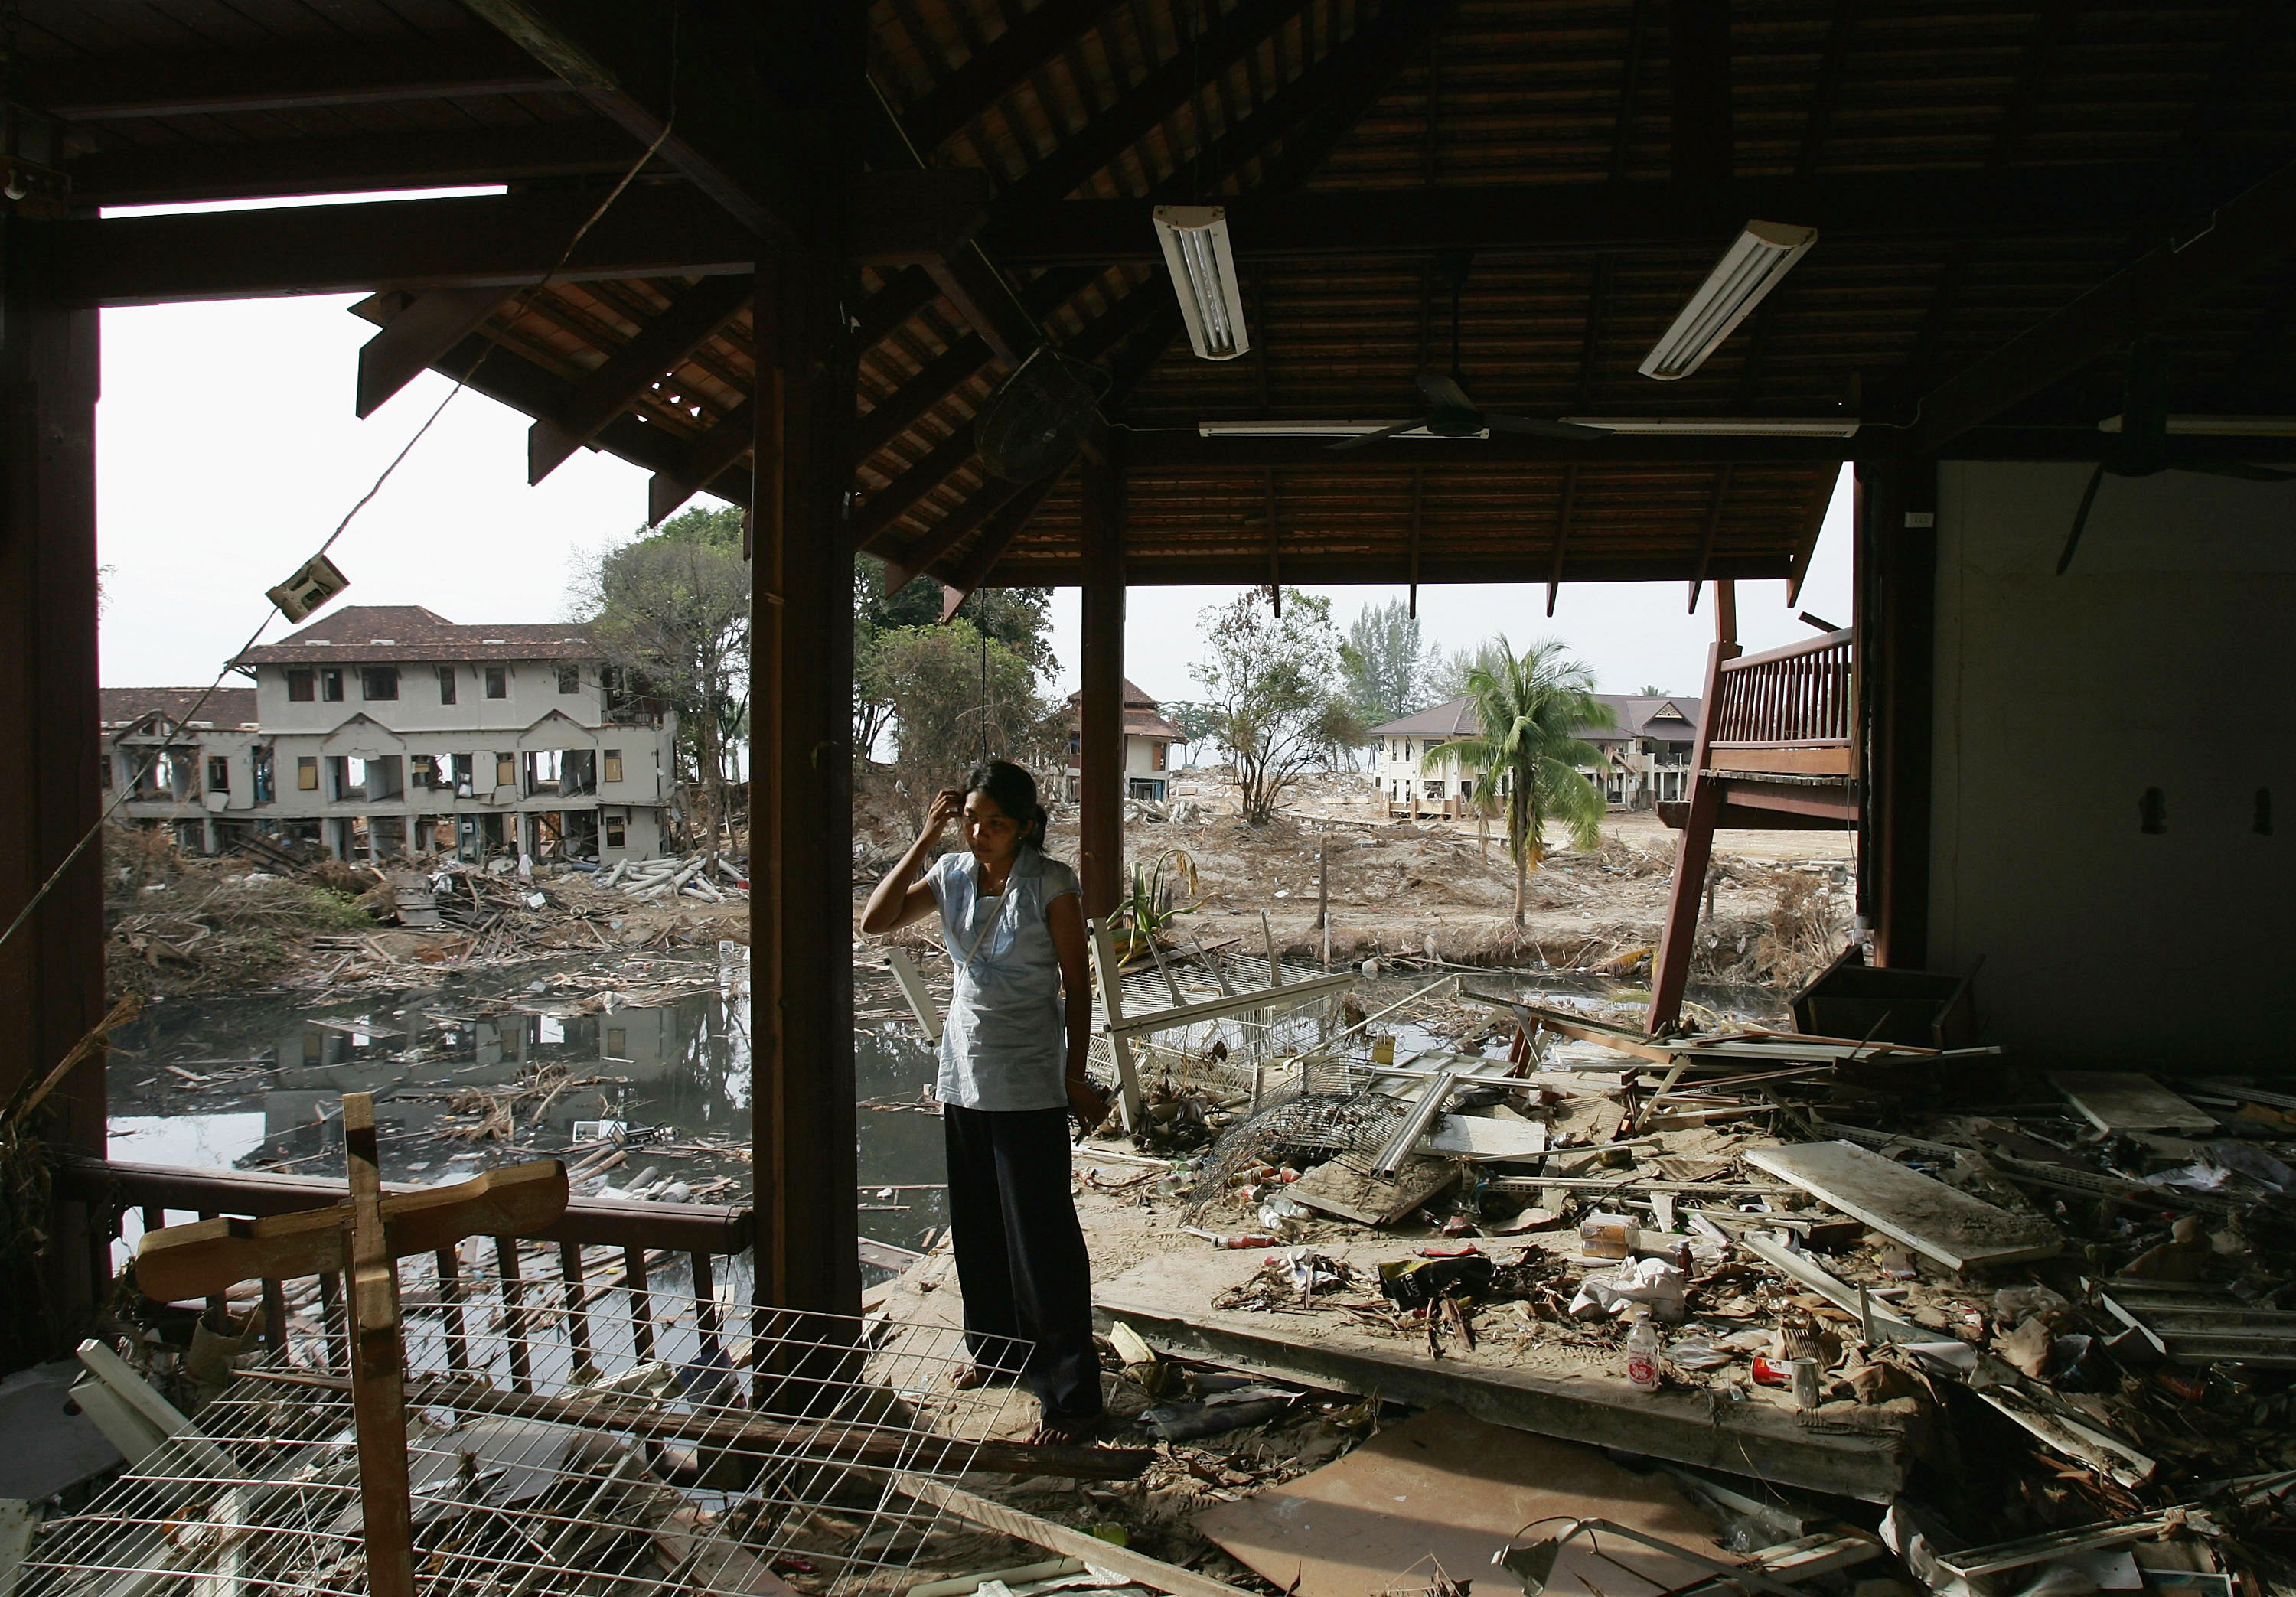 Tsunami survivor Paphun Somsri of Thailand returns to the destroyed seaside hotel where she used to work, in Khao Lak, Thailand on Jan. 7, 2005